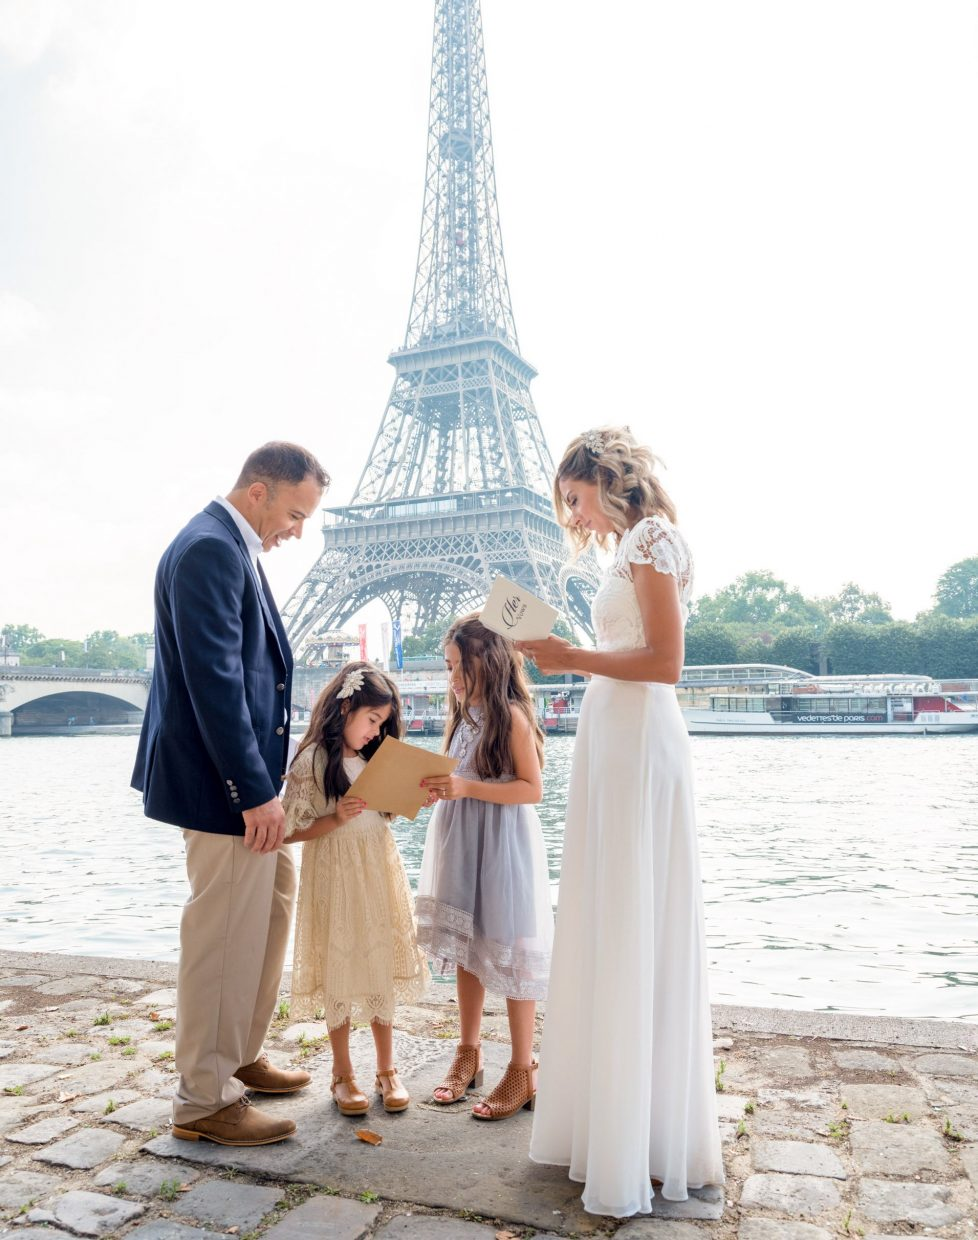 beautiful vow renewal at the eiffel tower in paris